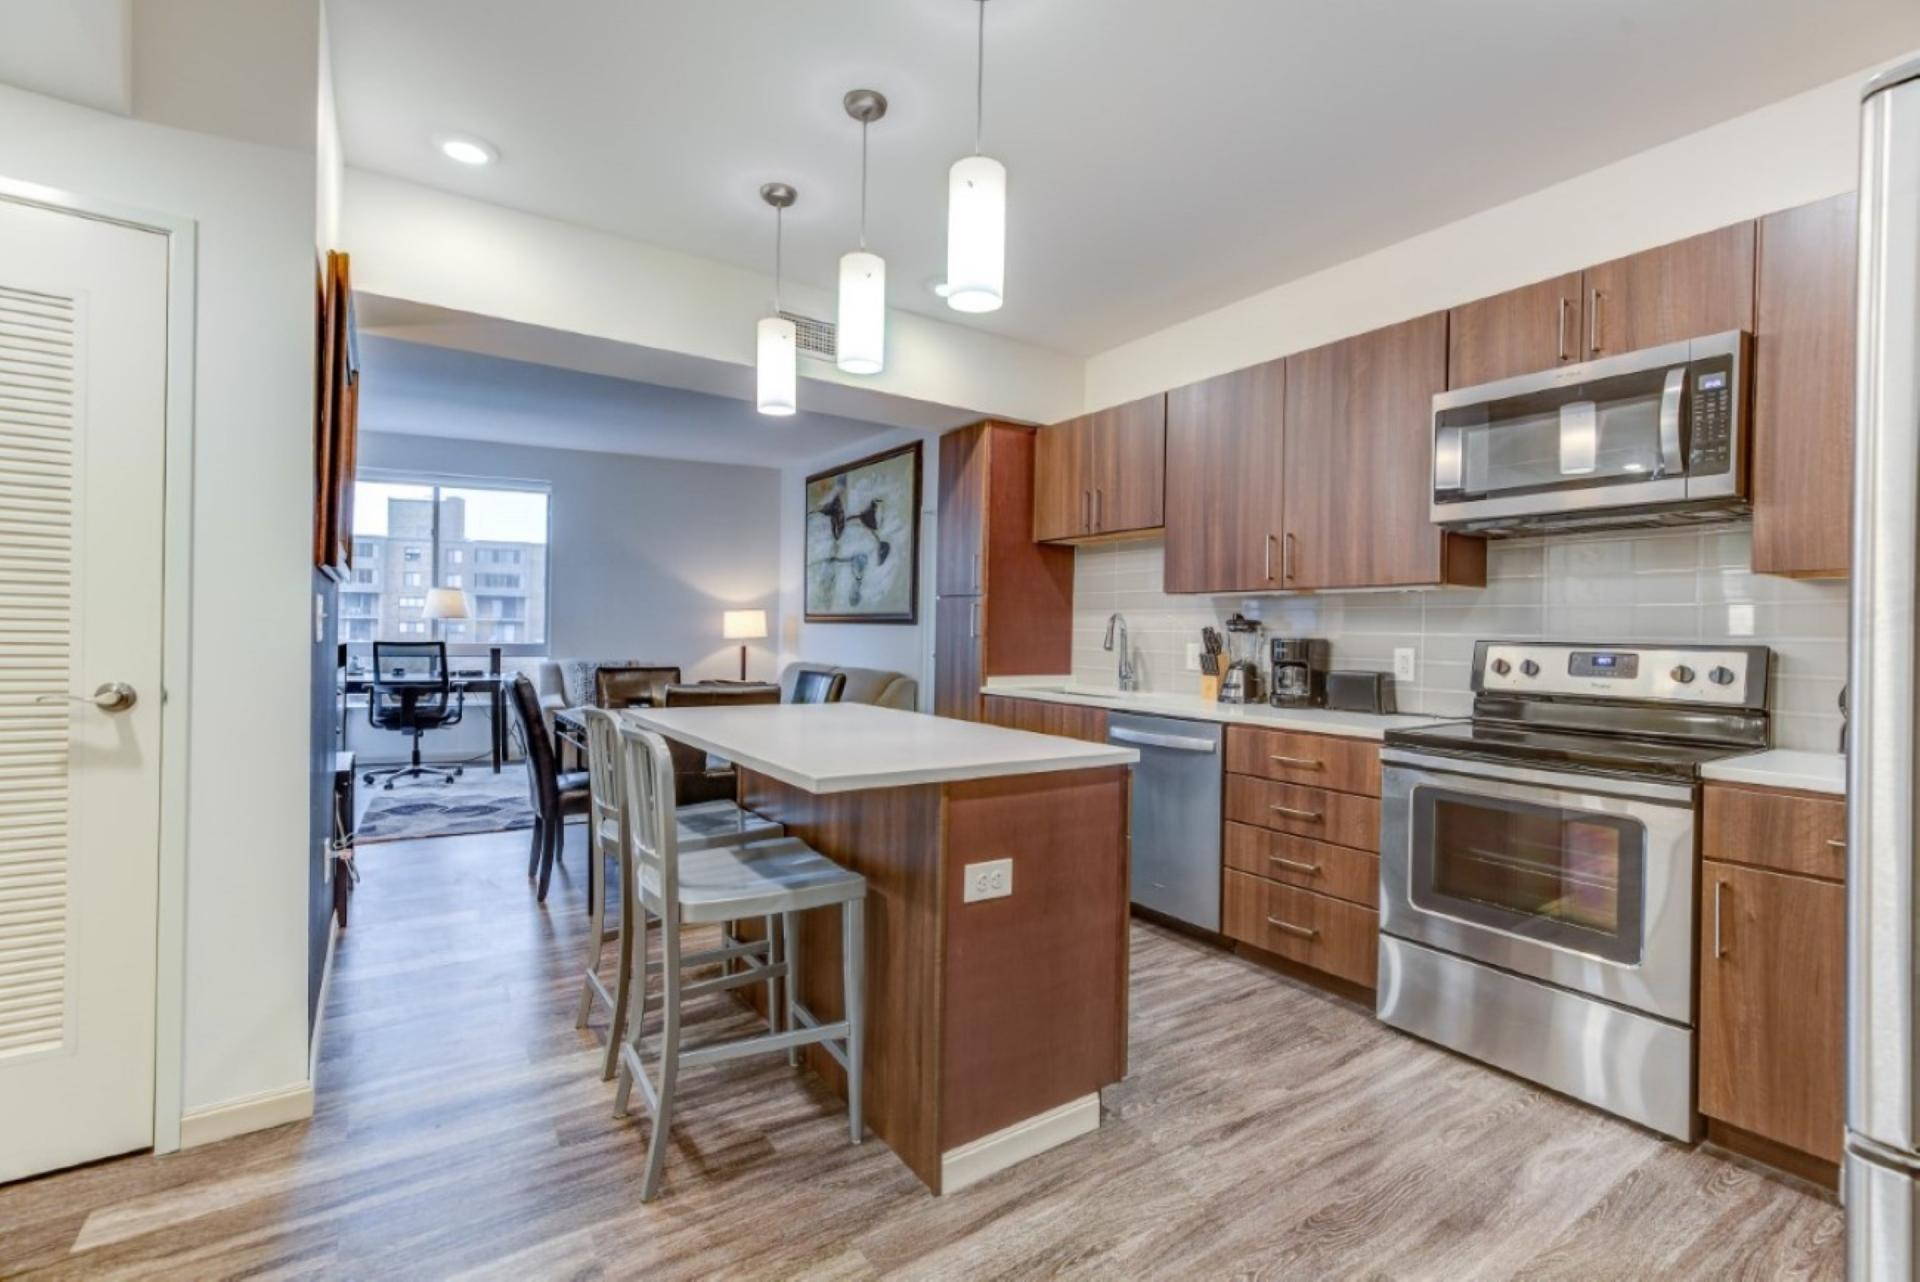 Kitchen at Centric Apartments, University Circle, Cleveland